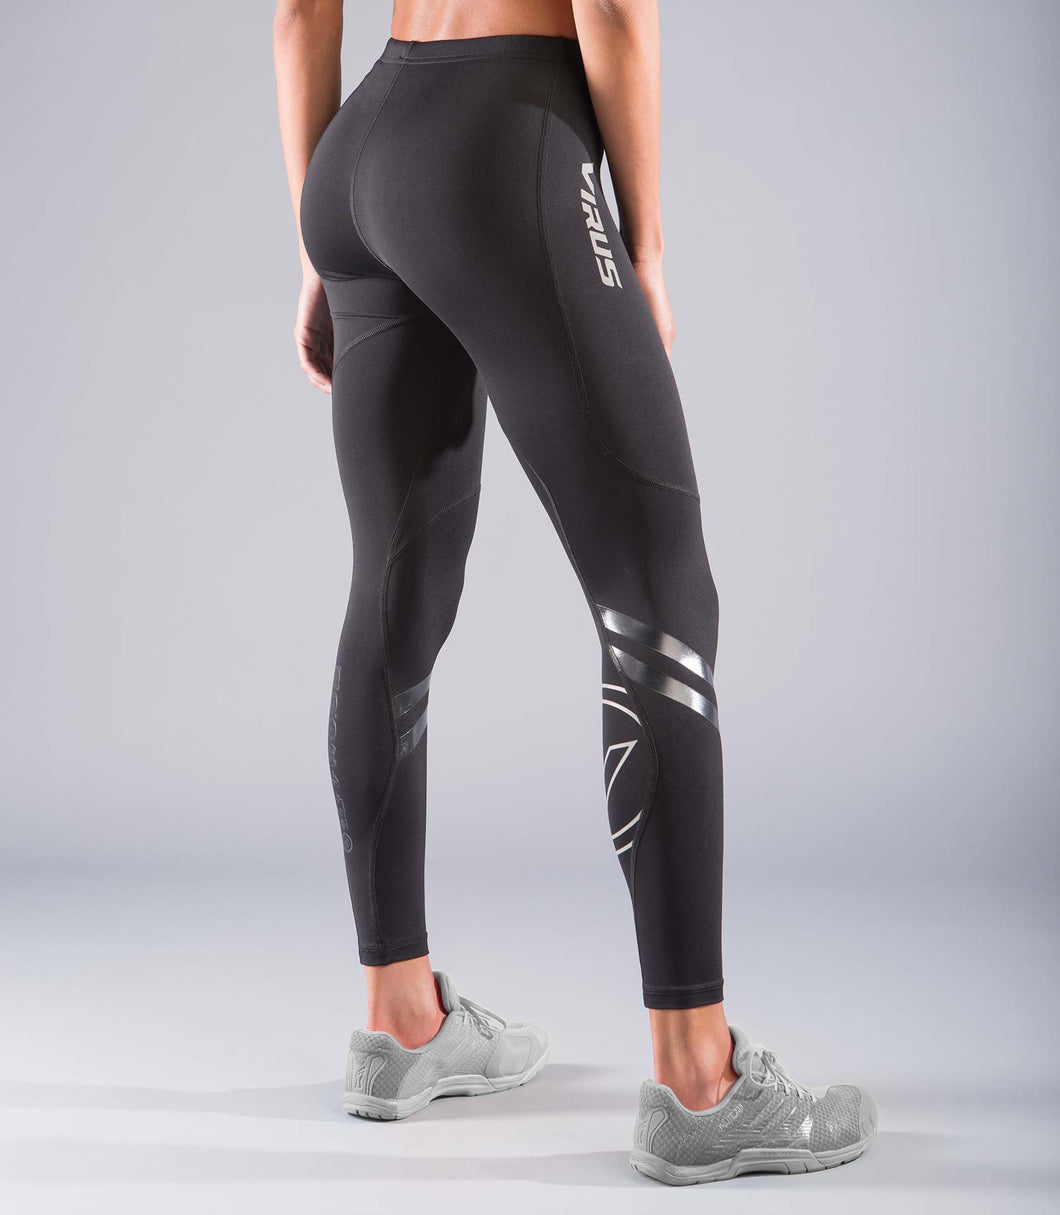 EAu10 | BioCeramic™ ELITE LIFTING Compression Pants | Black